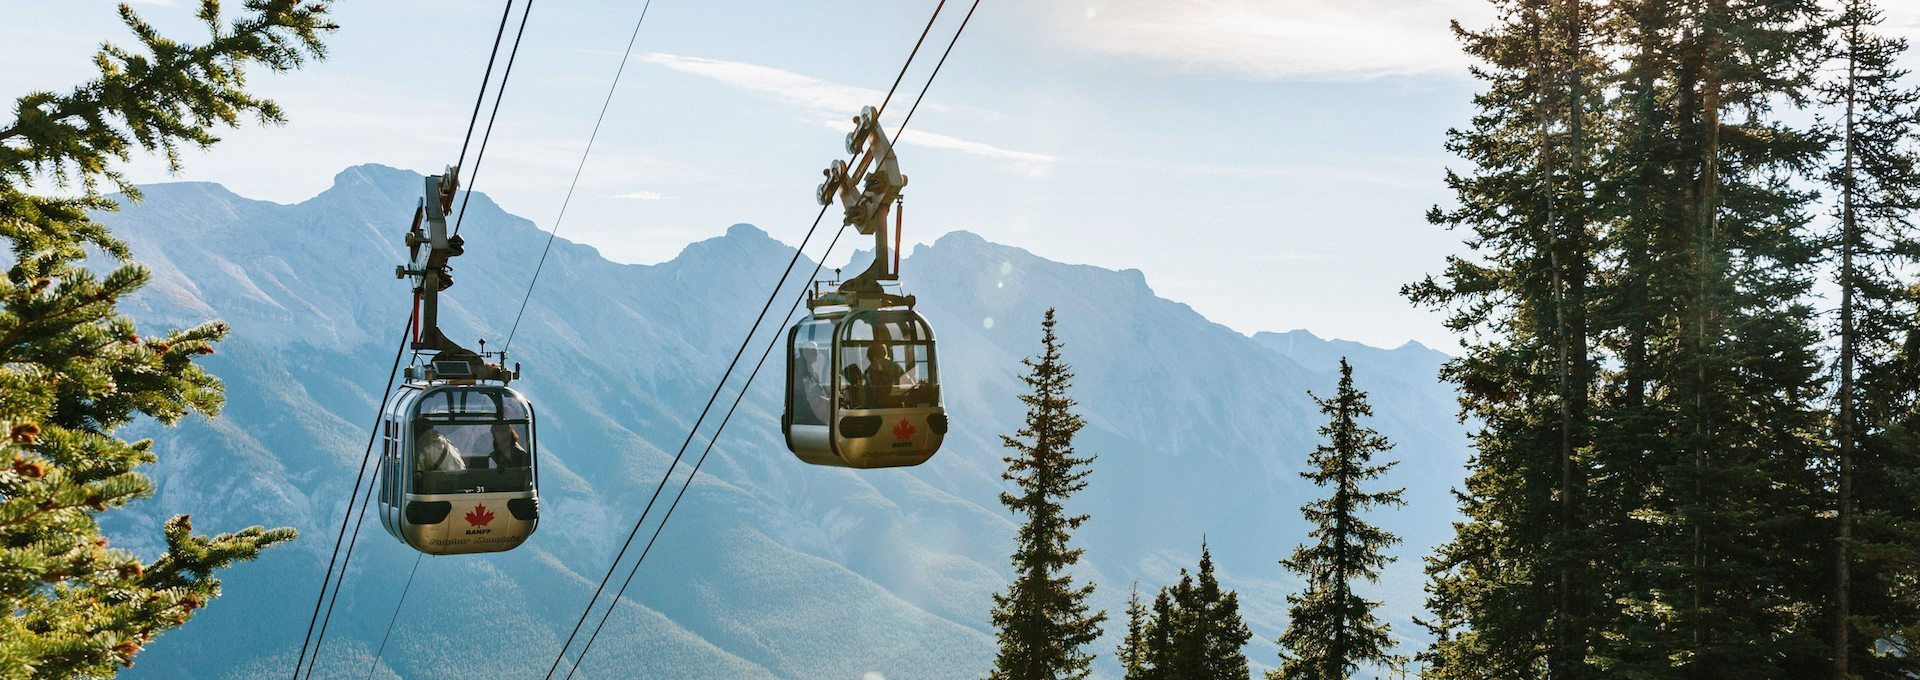 Banff Sightseeing Gondola